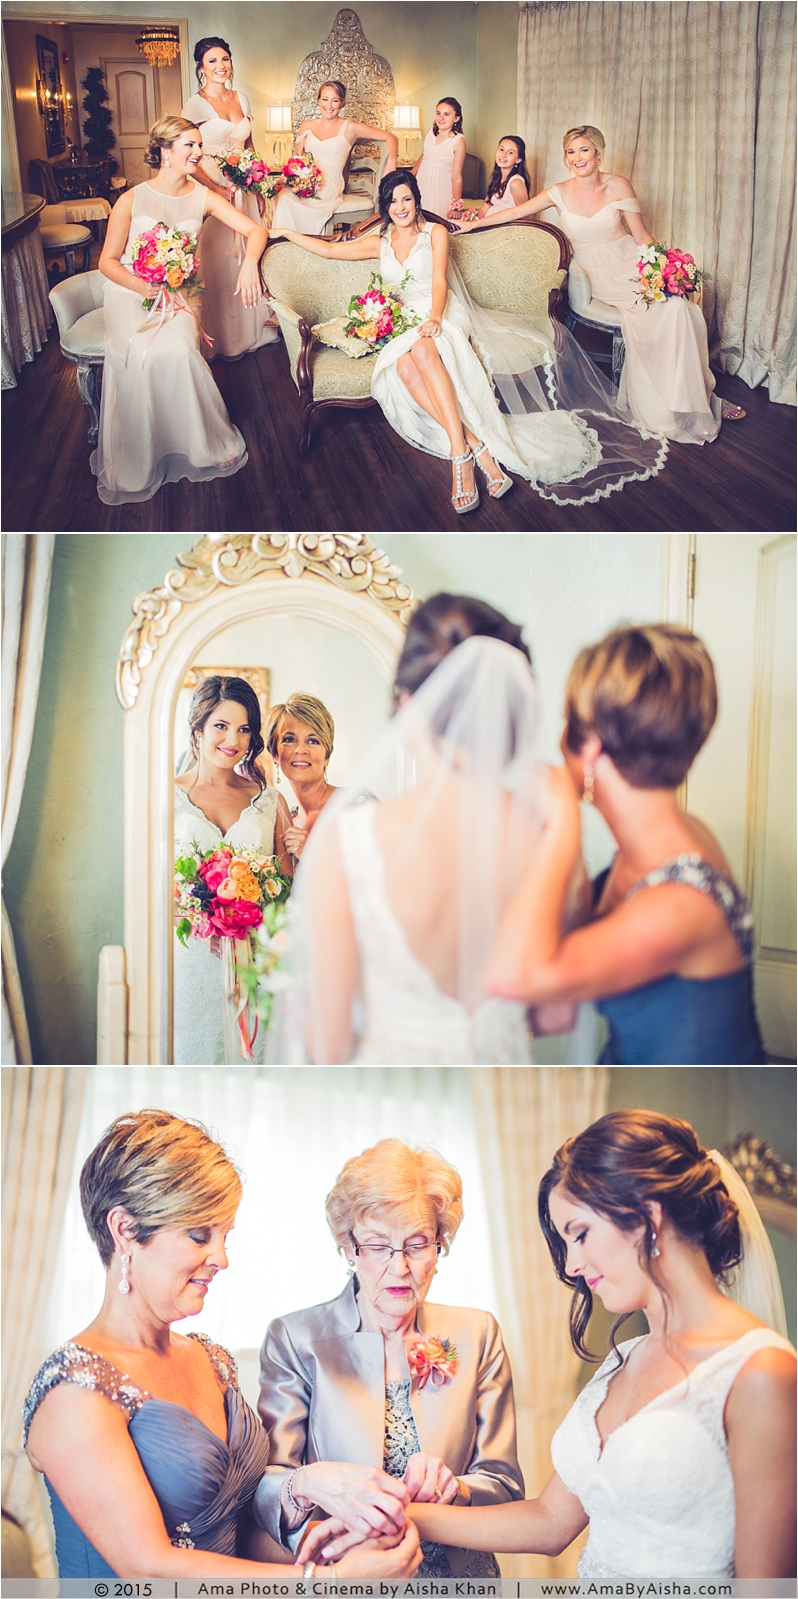 ©2015 Wedding photography from www.AmaByAisha.com